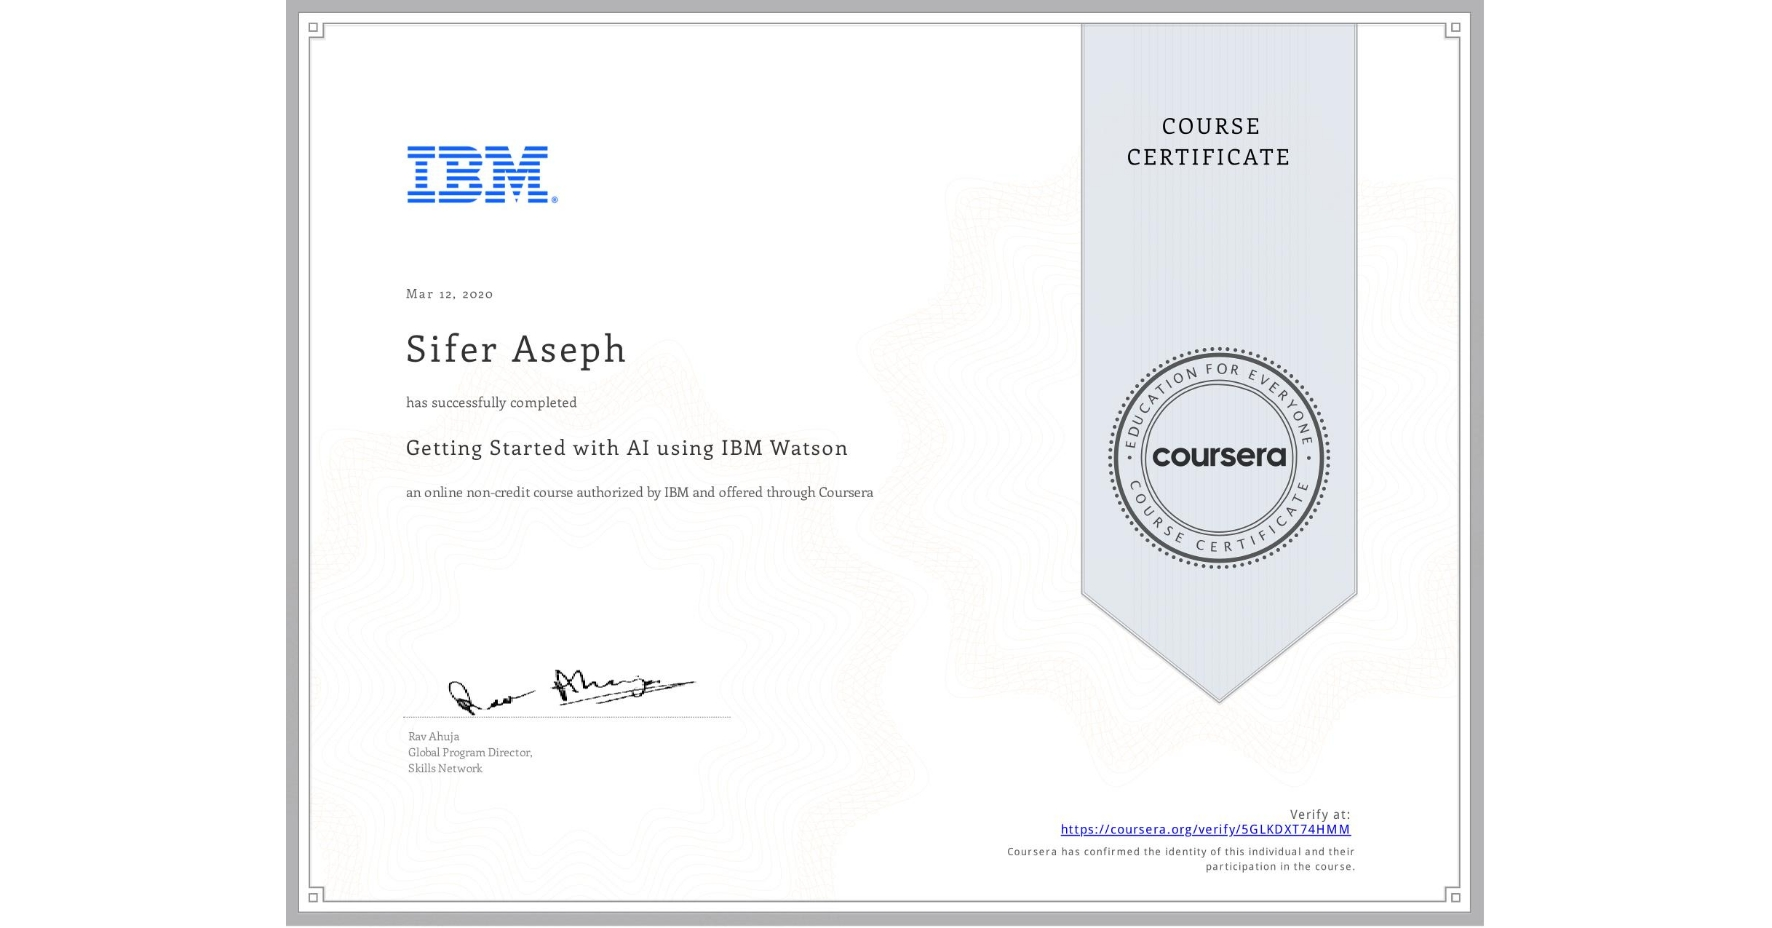 View certificate for Sifer Aseph, Getting Started with AI using IBM Watson, an online non-credit course authorized by IBM and offered through Coursera